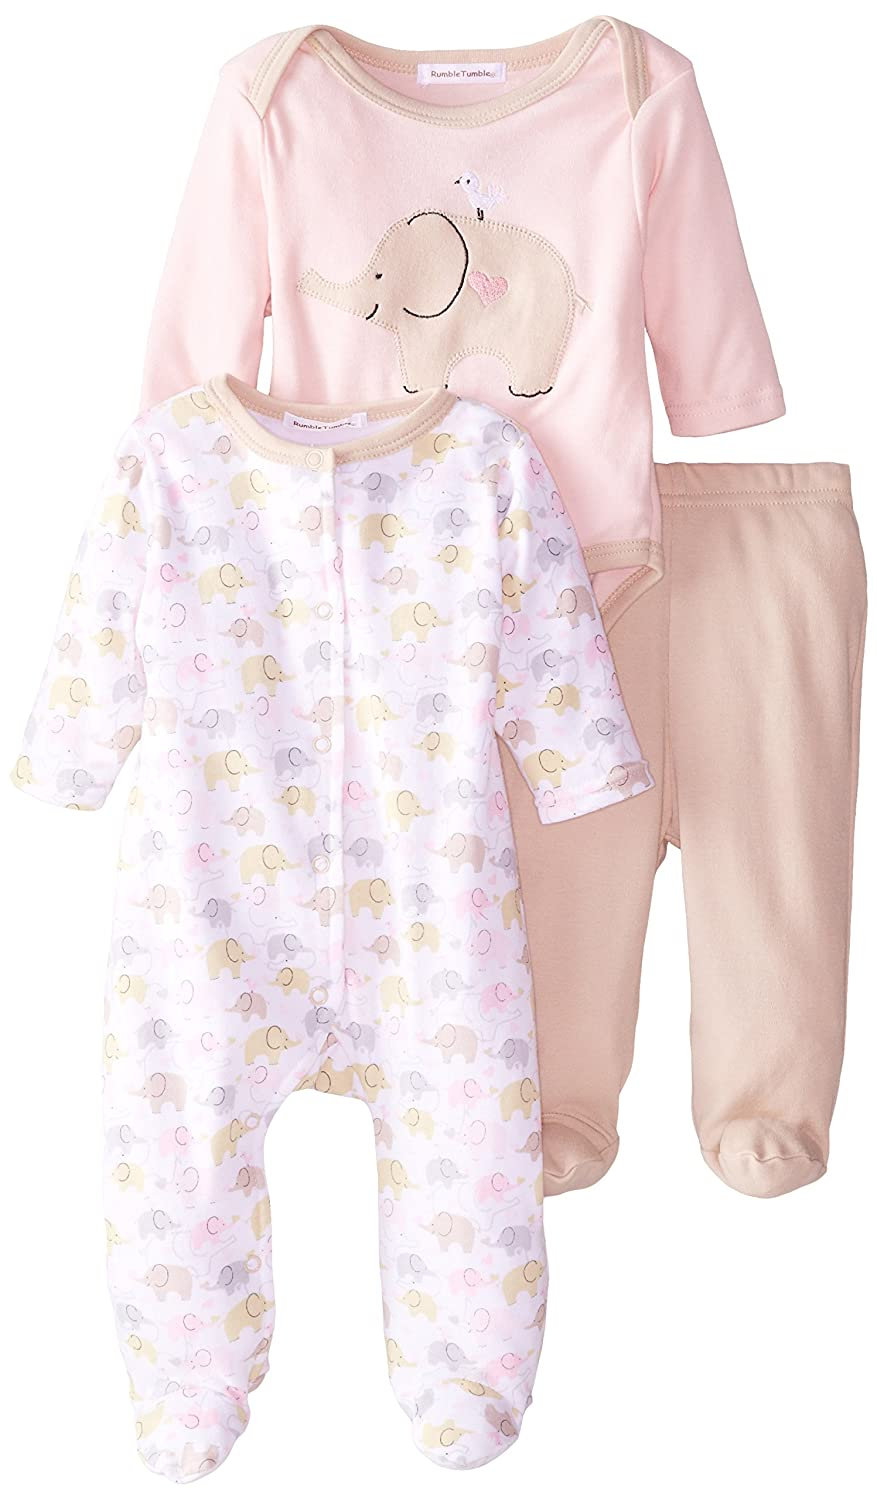 rumble tumble S3203N Baby Clothing, Pink, 3-6